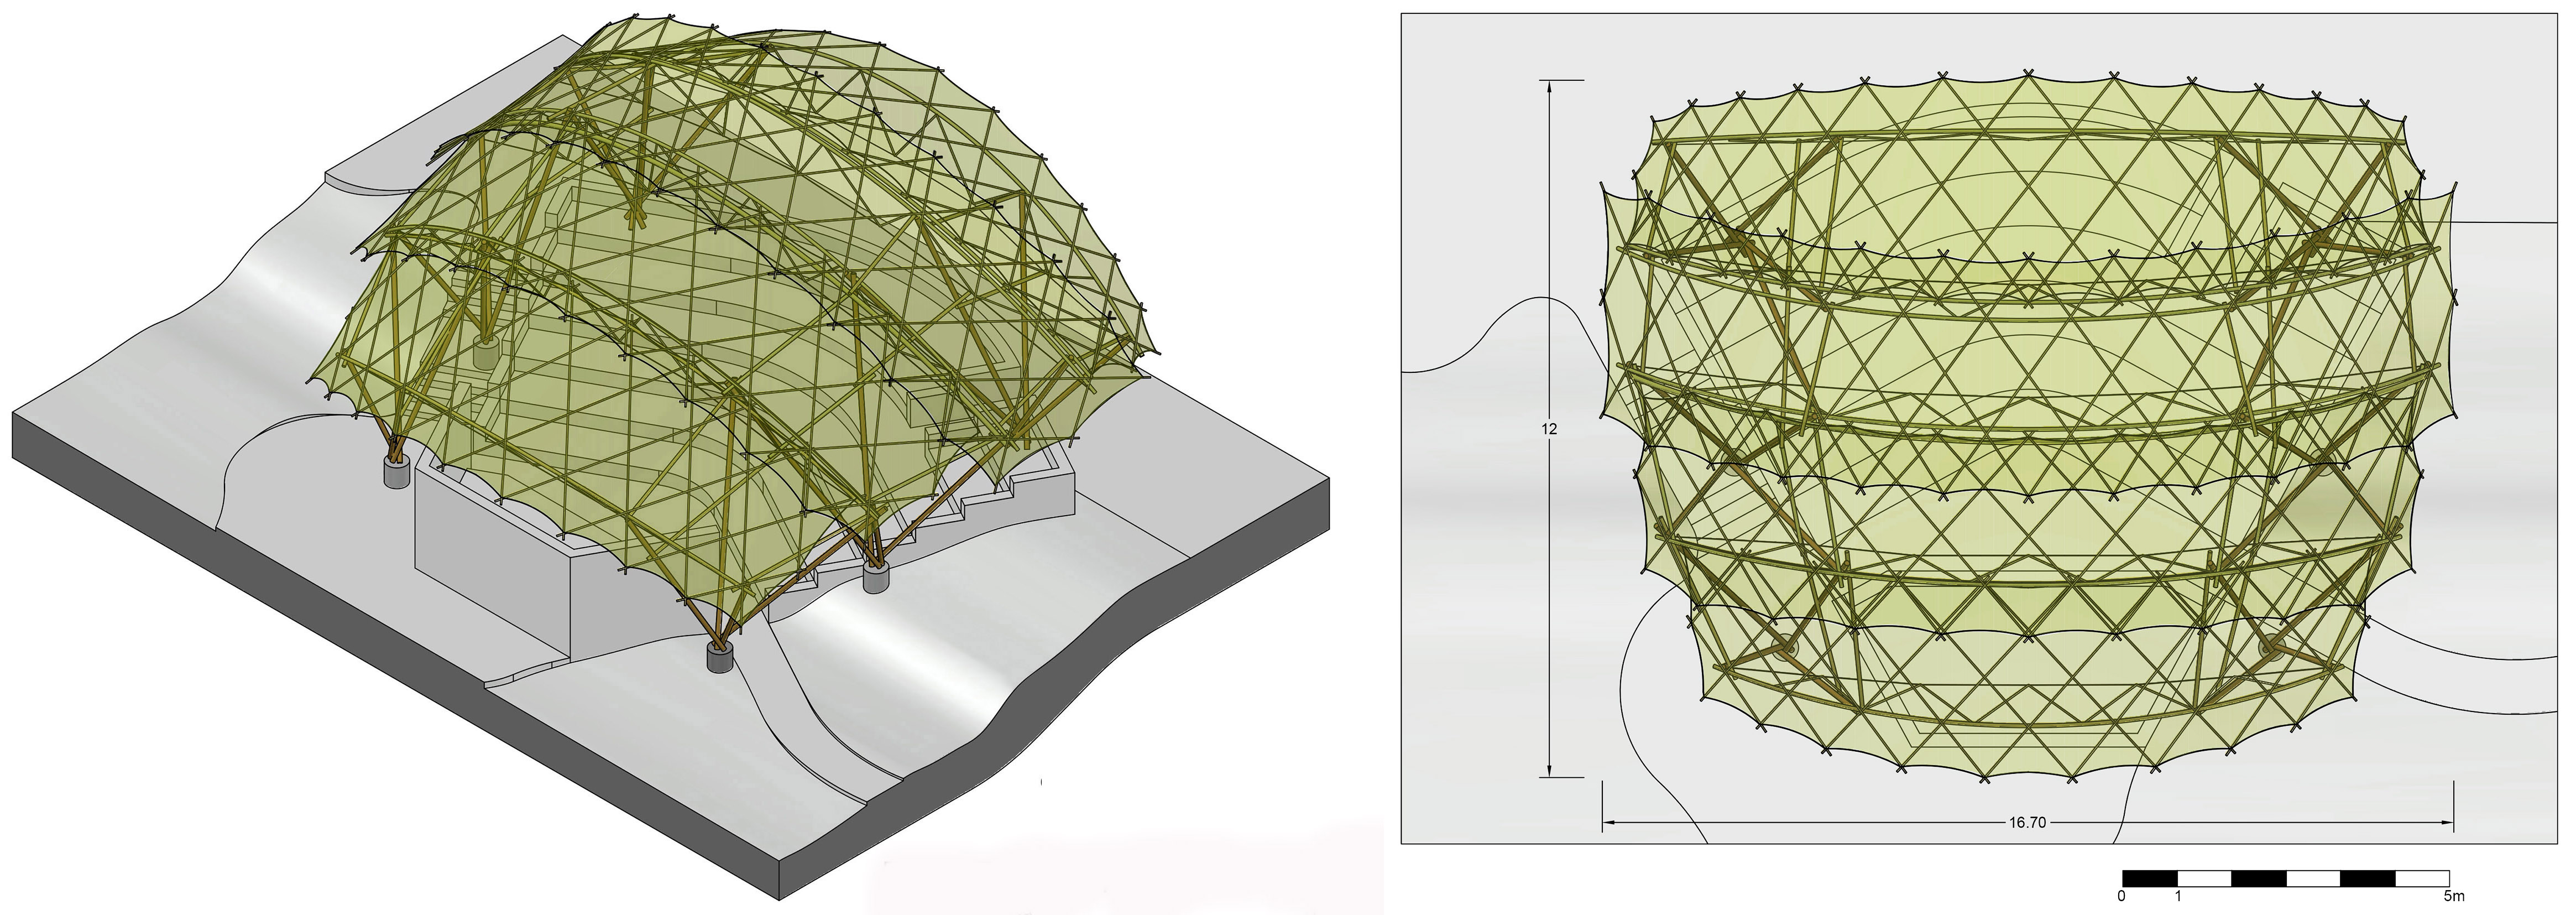 Bamboo-and-textile-space-structure-dome-3.jpg